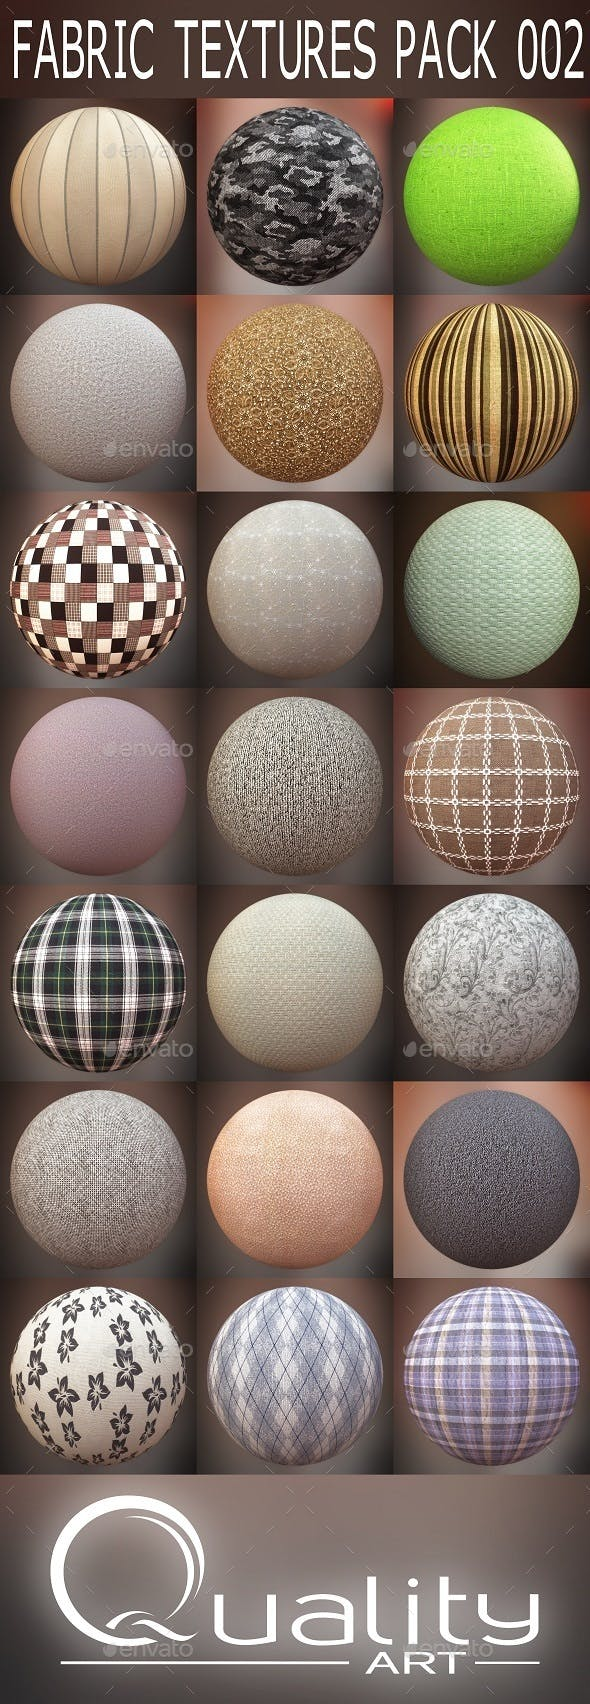 FABRIC TEXTURES PACK 002 - 3DOcean Item for Sale